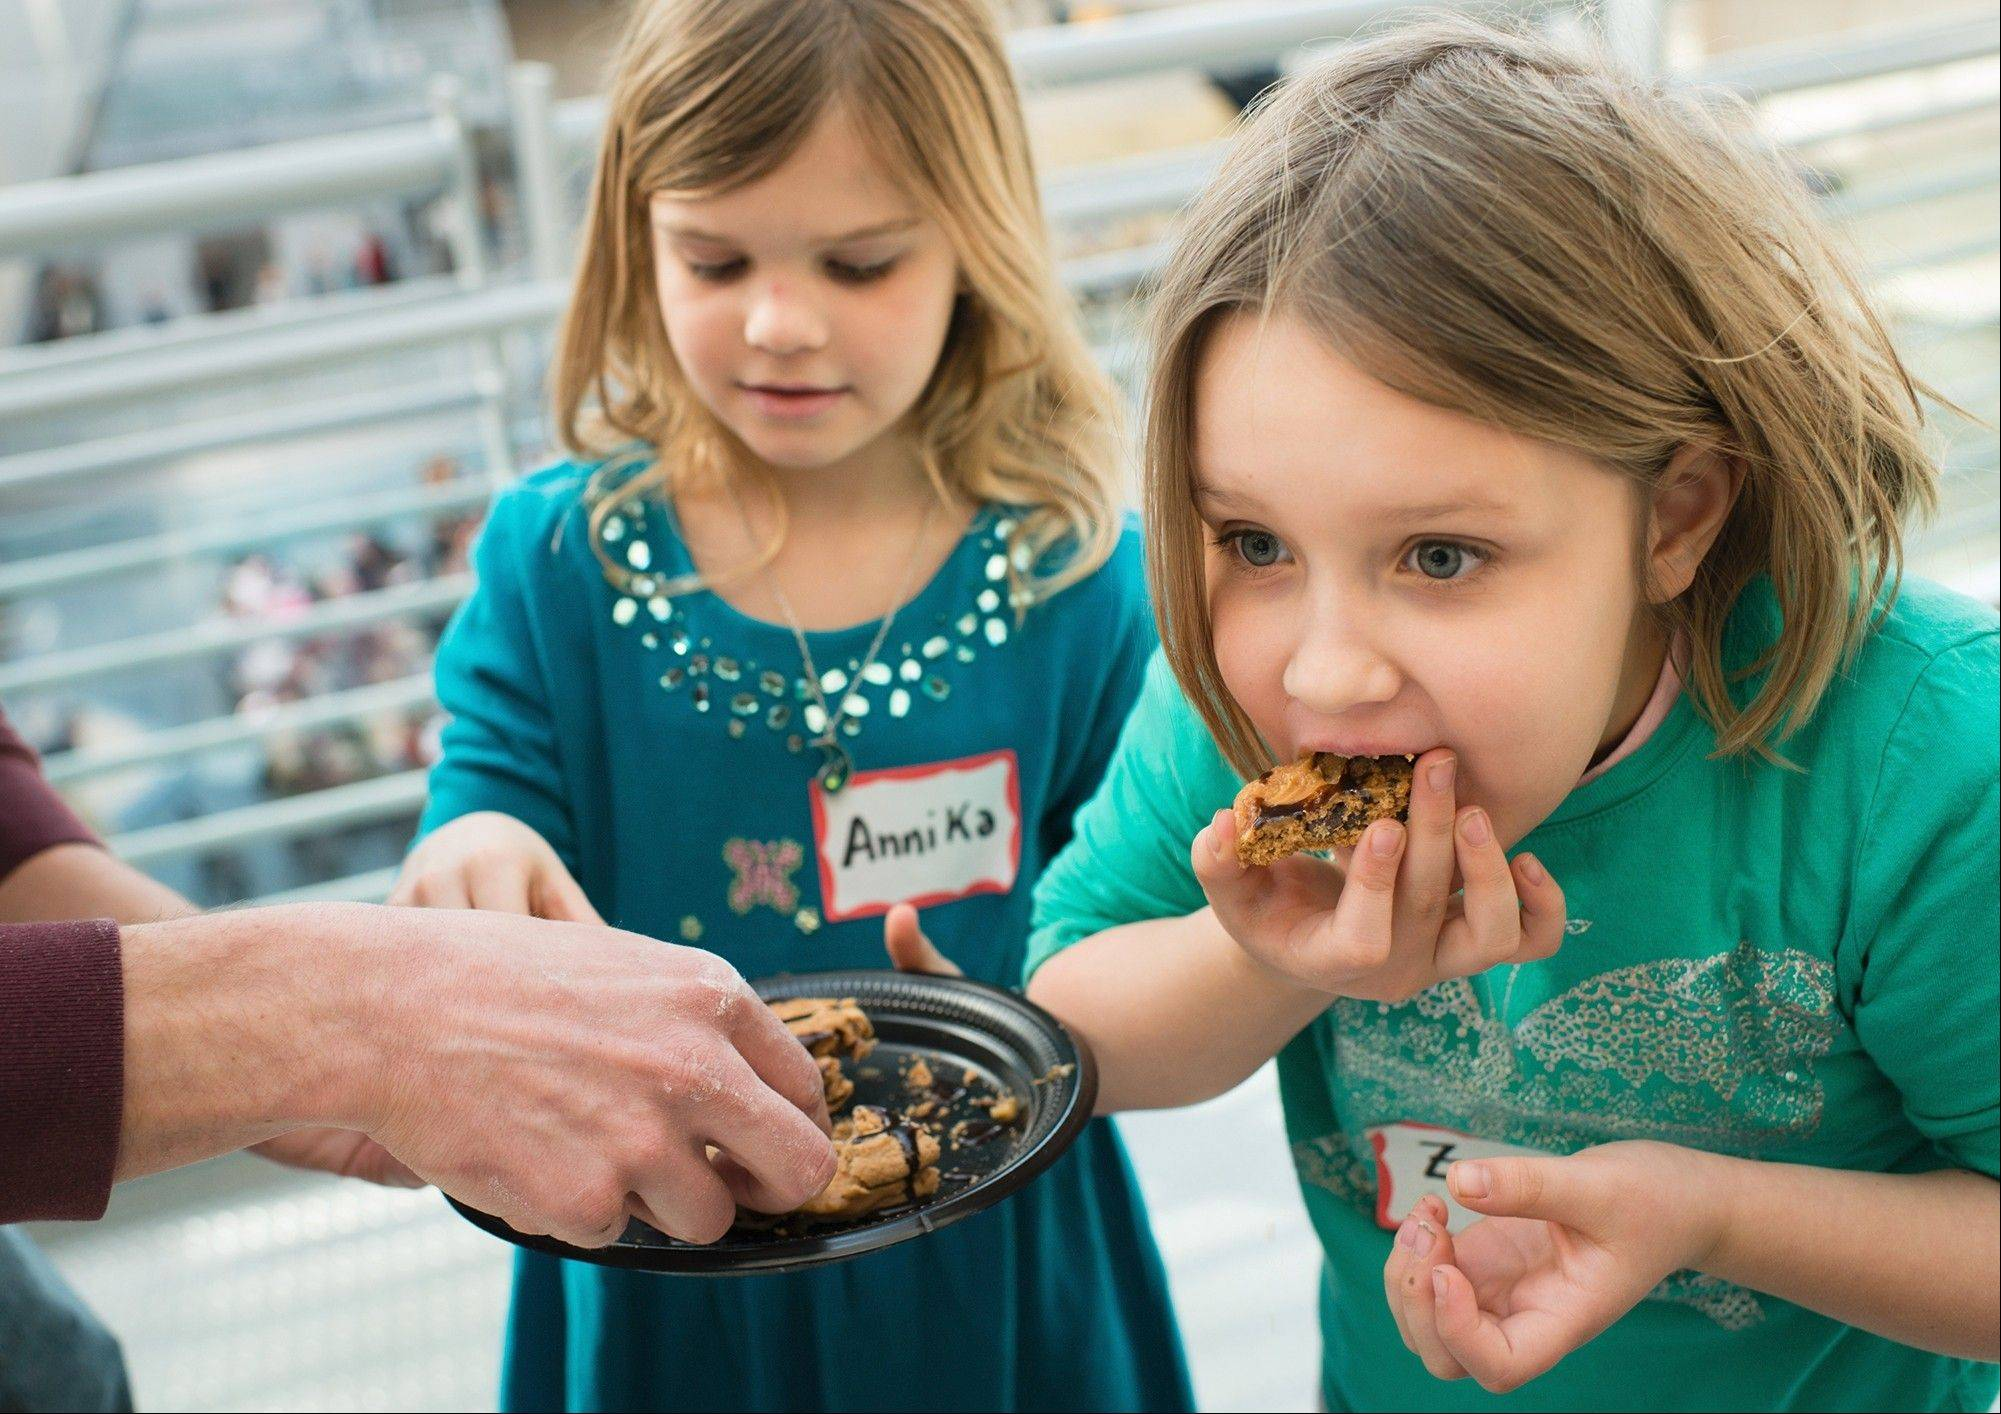 Annika Pugh, 8, and her sister Zoe, 7, of Chantilly, Va., eat a peanut butter-chocolate cookie sandwich they helped their father make for the second annual Meal-Ready-To-Eat/MRE cook-off Saturday. Their father, Marine Capt. Douglas Pugh, who is stationed in North Carolina at Marine Corps Air Station Cherry Point, won the contest's best entree award with a chicken pesto pasta dish.